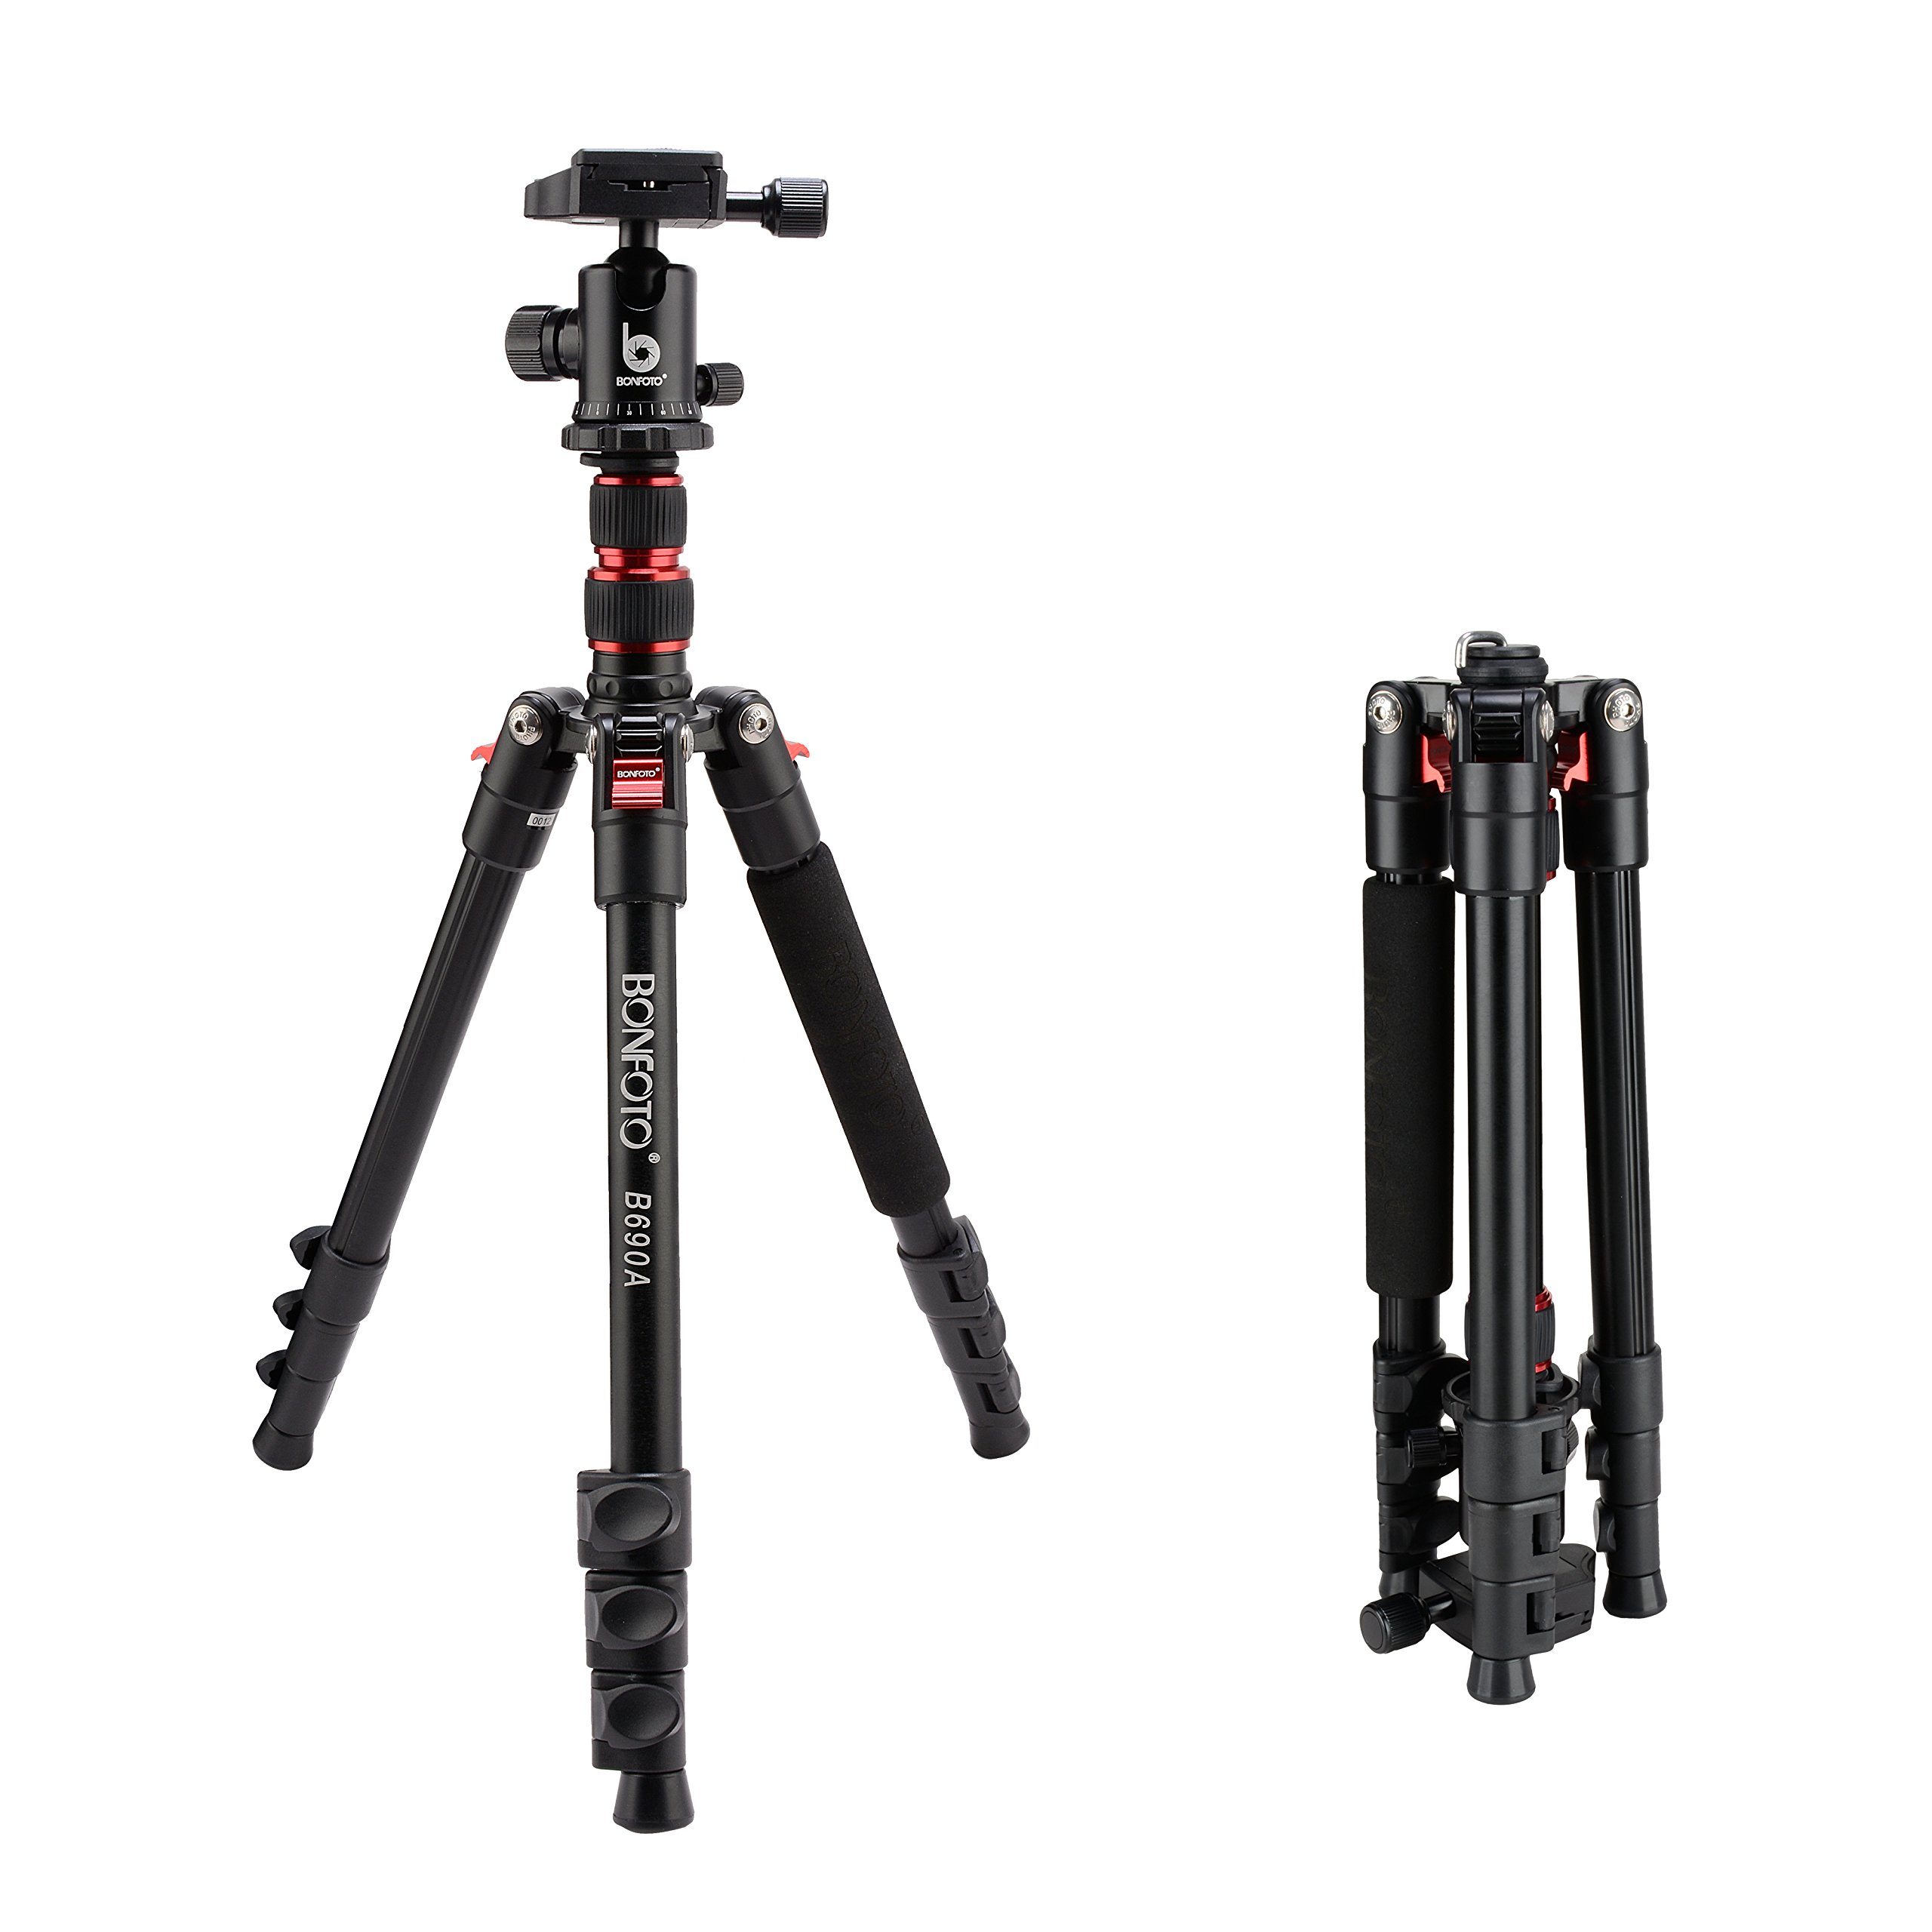 "BONFOTO B690A Portable Travel Tripod lightweight with 1/4"" Quick Release Plate, 360° Ball Head And Bubble Level For Canon Nikon Sony DSLR Camera"